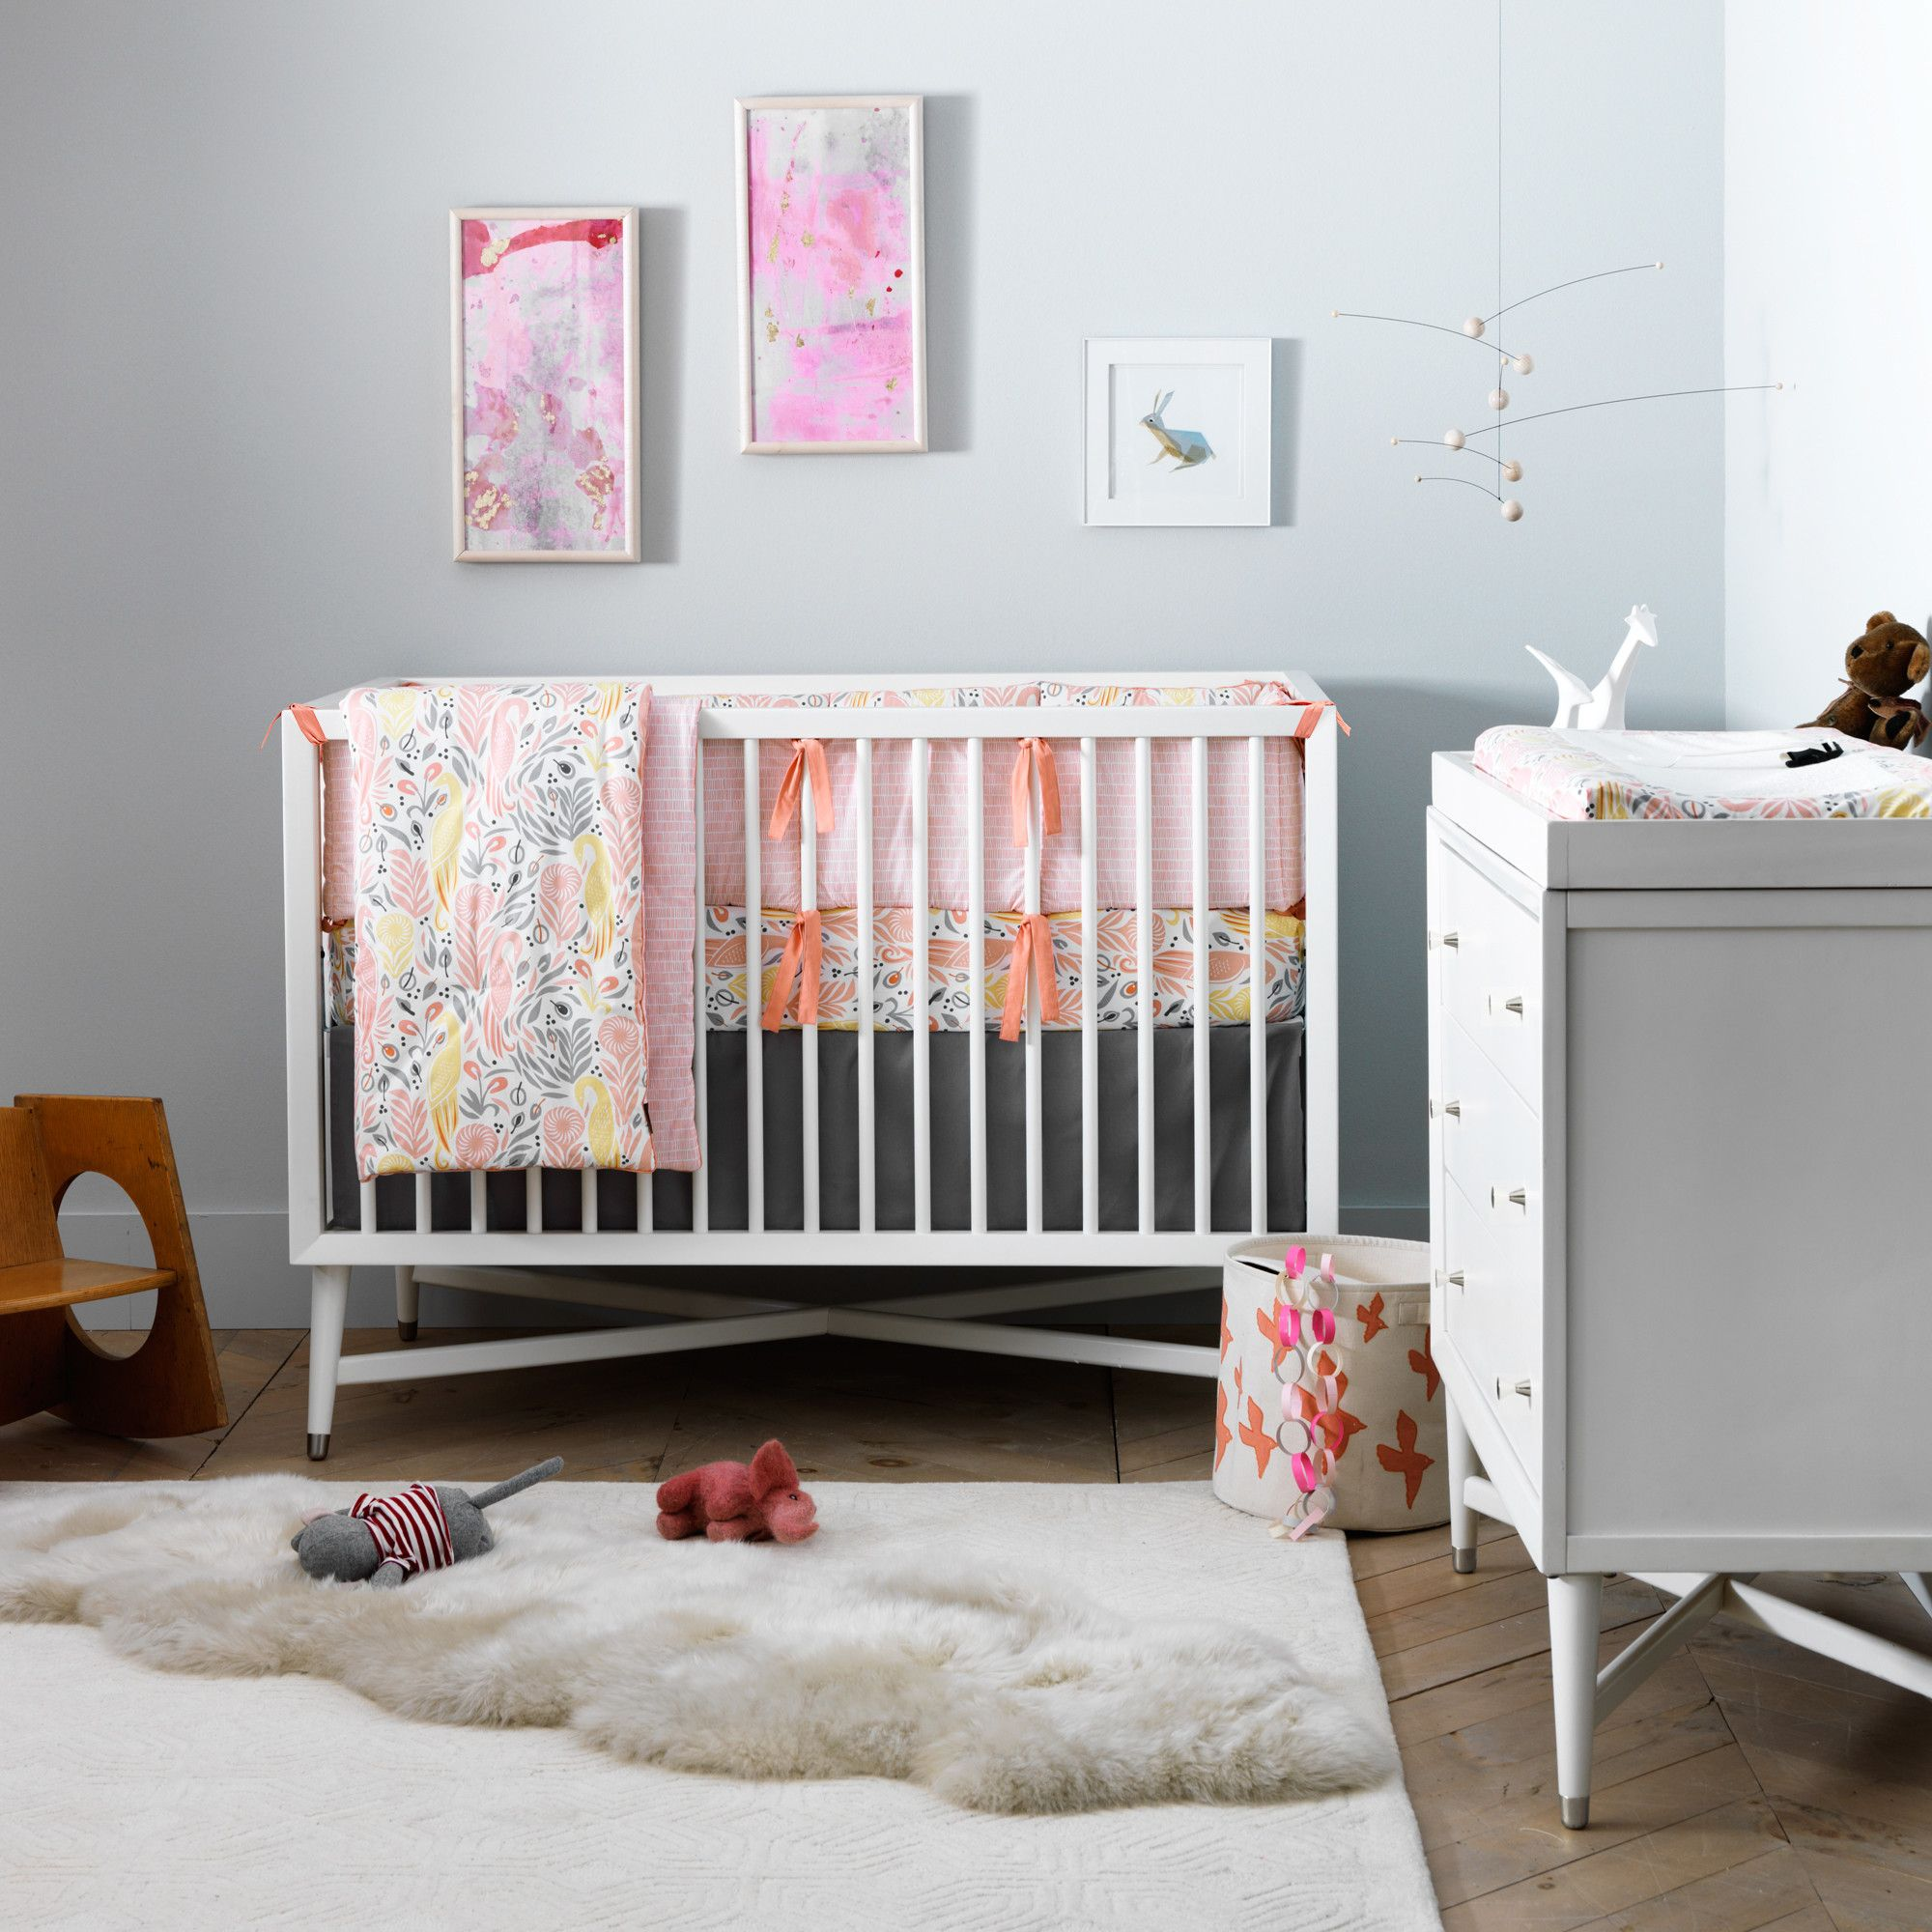 elegant french size modern white with baby wooden rustic style cozy and vintage shapes outstanding crib cribs luxury contemporary ure ideas large oration accessories